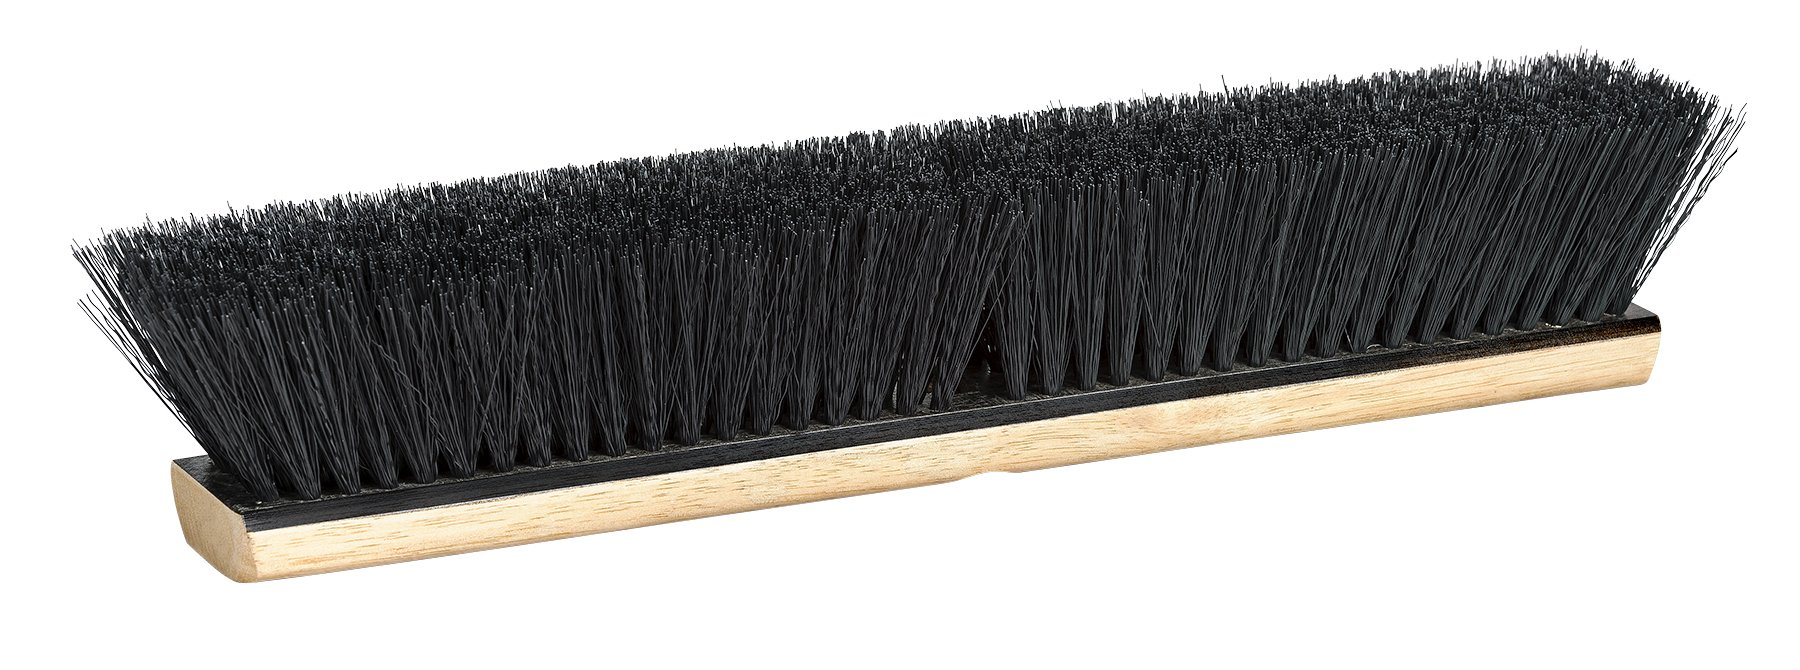 M2 Professional 24 Inch Tampico Fiber Heavy Duty Push Broom Head with Hardwood Block - Fine/Medium Sweep (Case of 12)